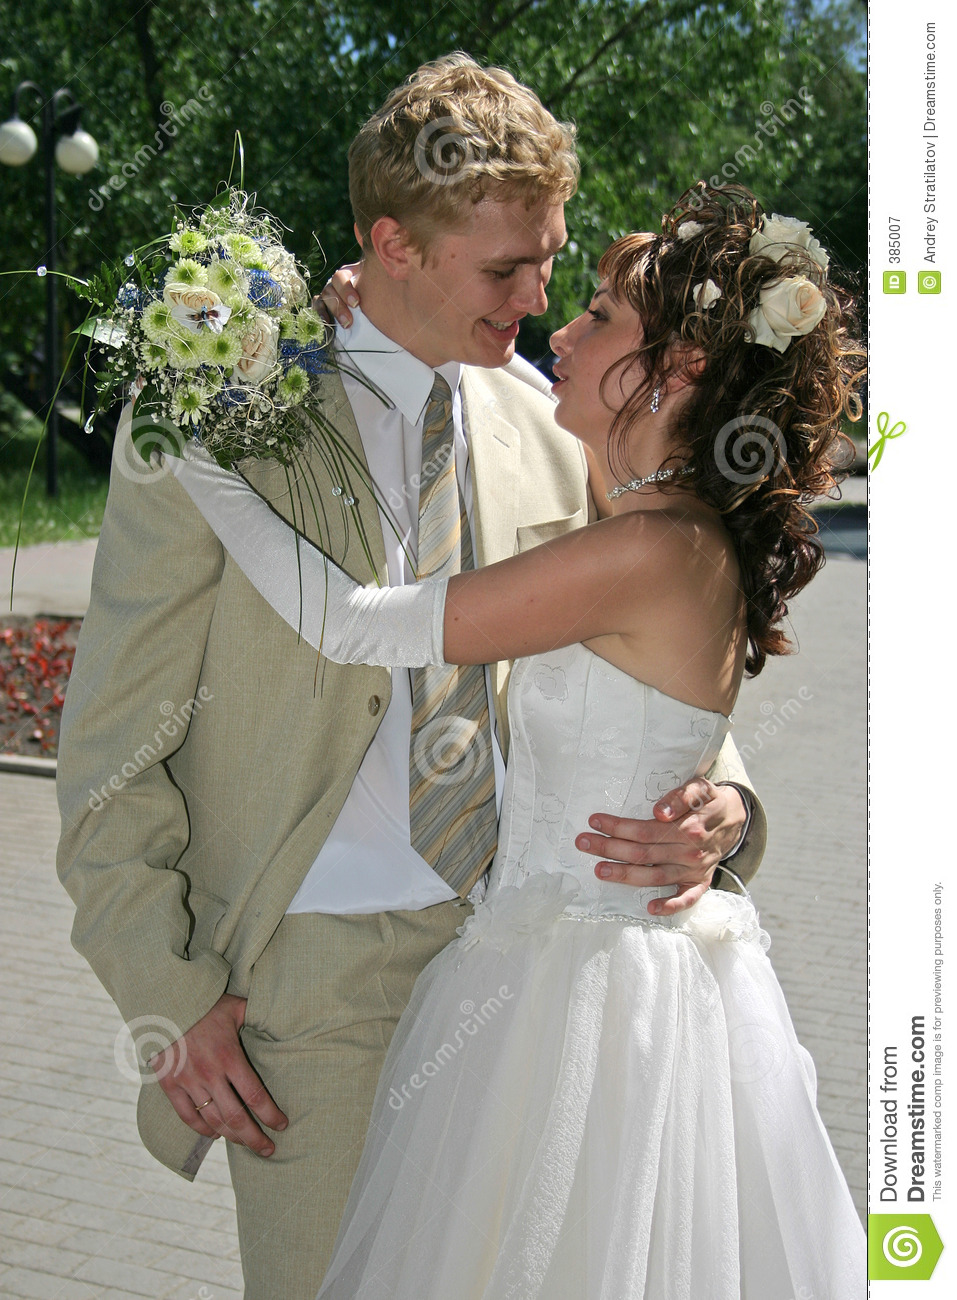 Newly married couple royalty free stock photography image 385007